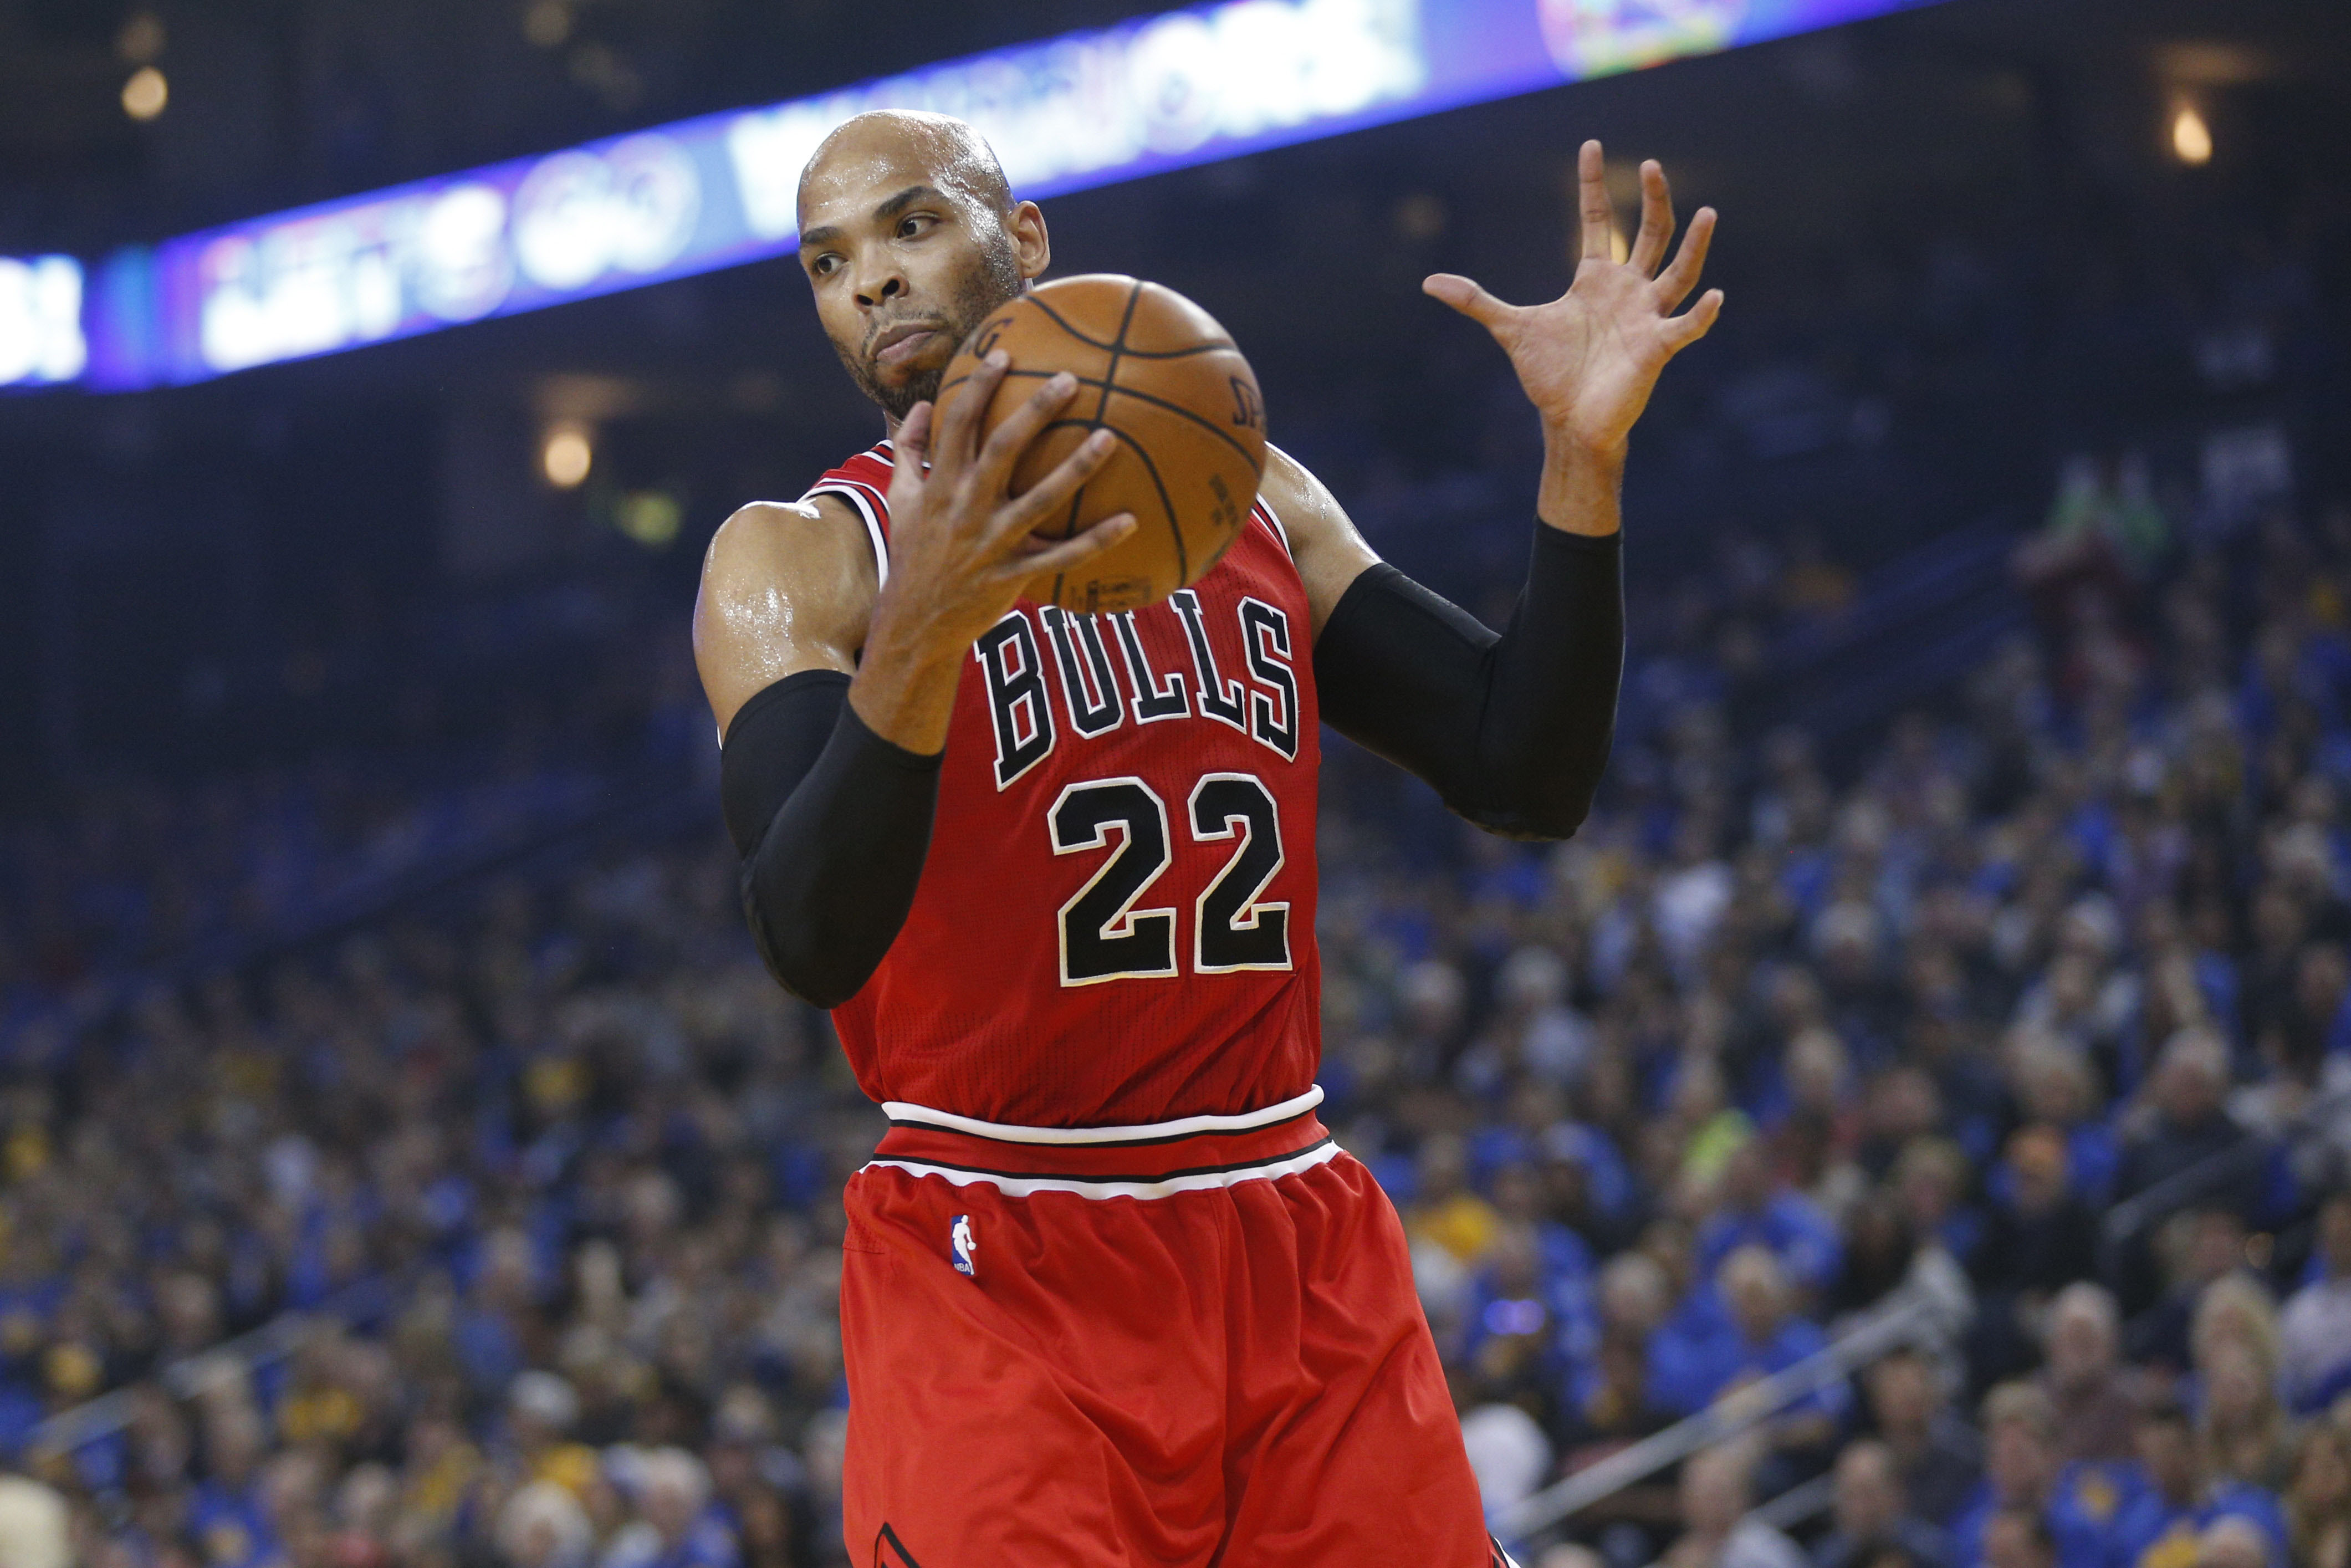 Feb 8, 2017; Oakland, CA, USA; Chicago Bulls forward Taj Gibson (22) holds onto a rebound against the Golden State Warriors in the first quarter at Oracle Arena. Mandatory Credit: Cary Edmondson-USA TODAY Sports